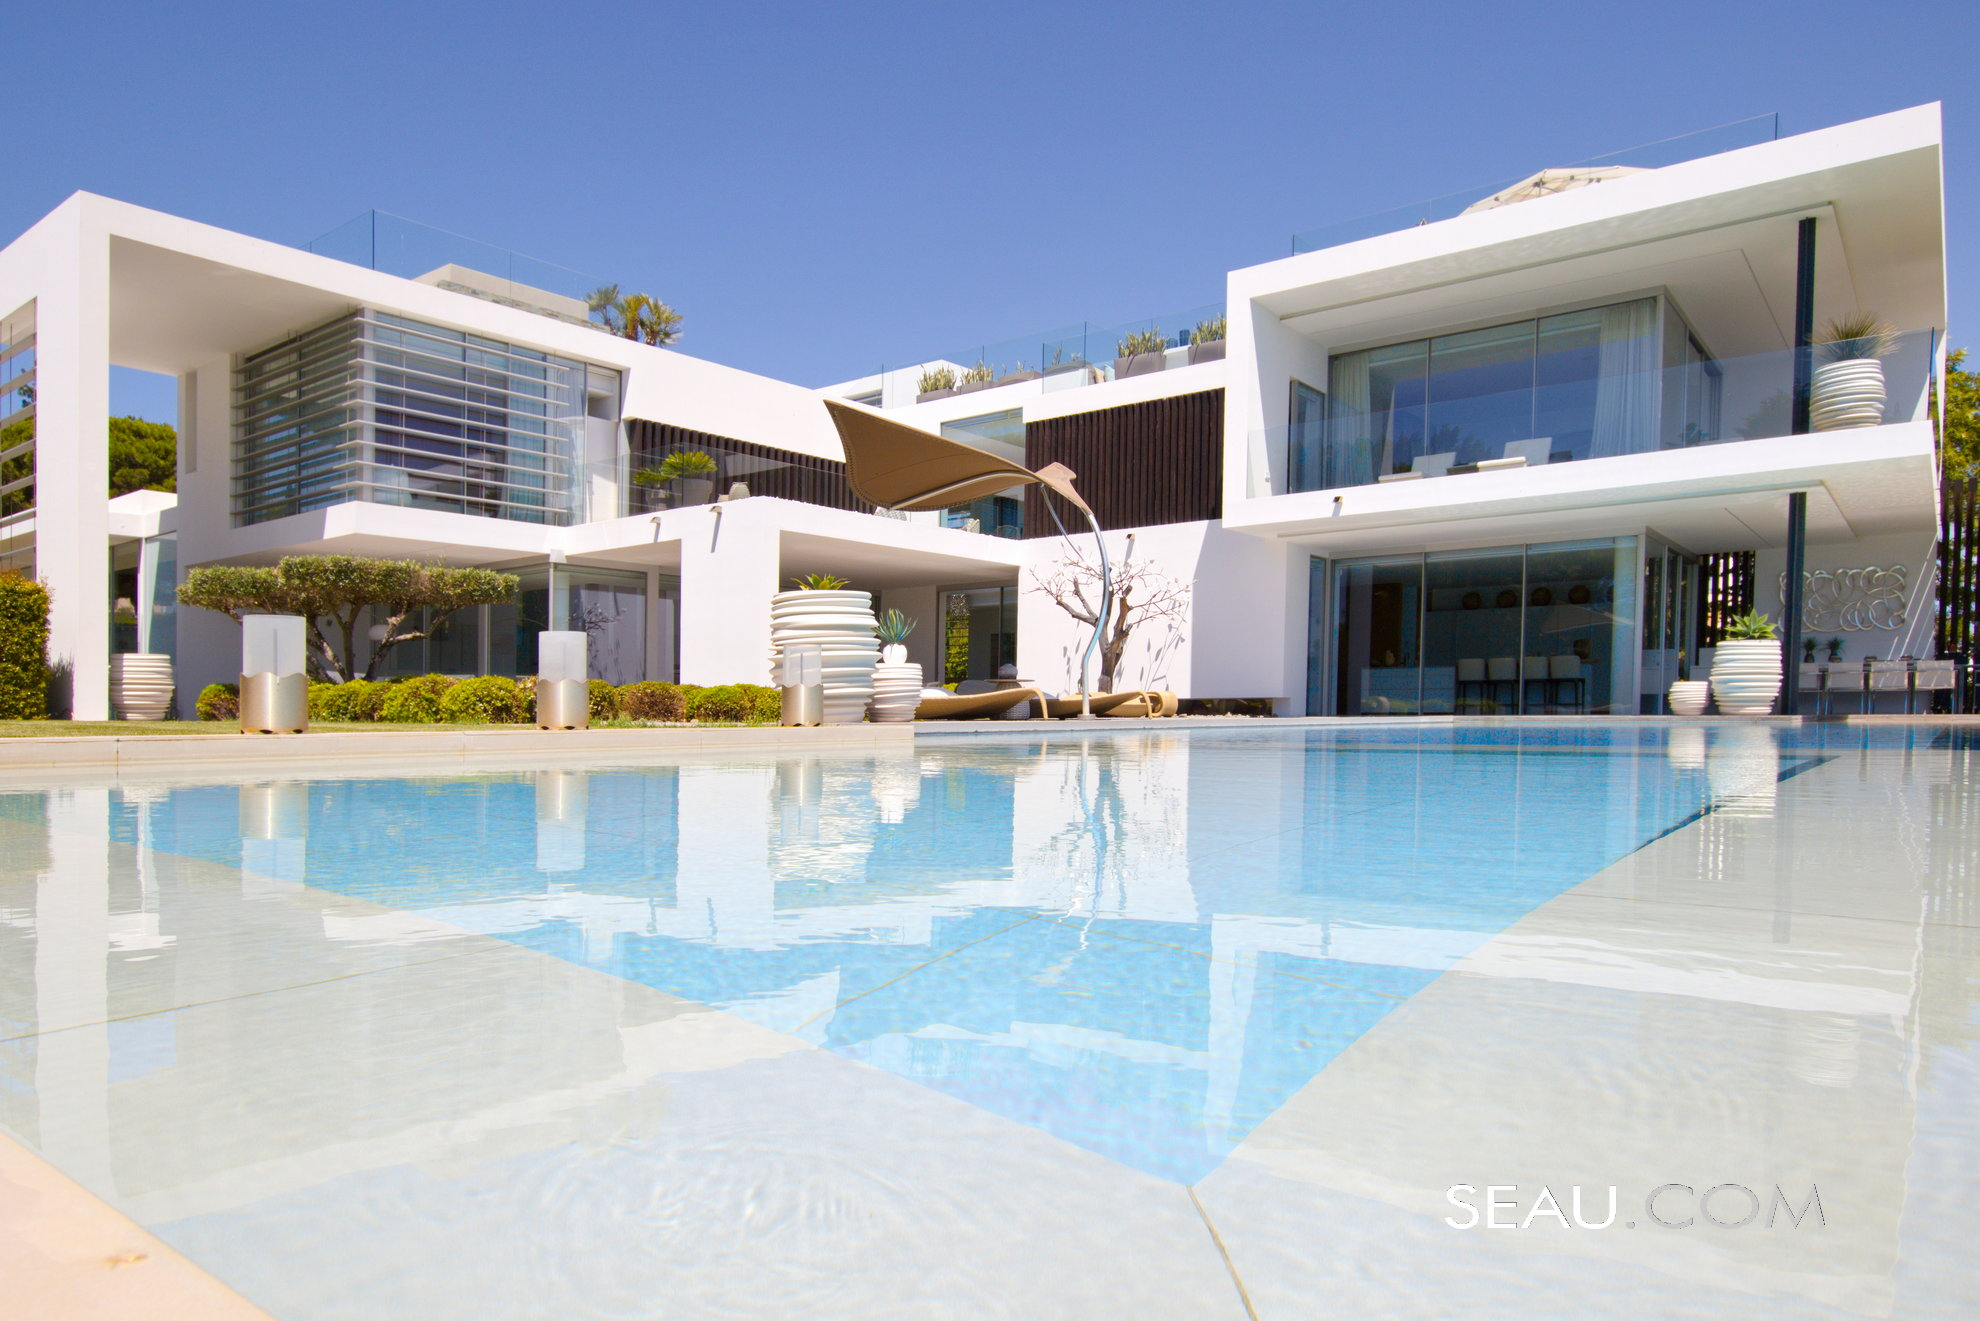 The property has stunning contemporary architecture, balanced by comfortable interiors, all in perfect harmony with the immaculate garden and the beautiful natural surroundings.